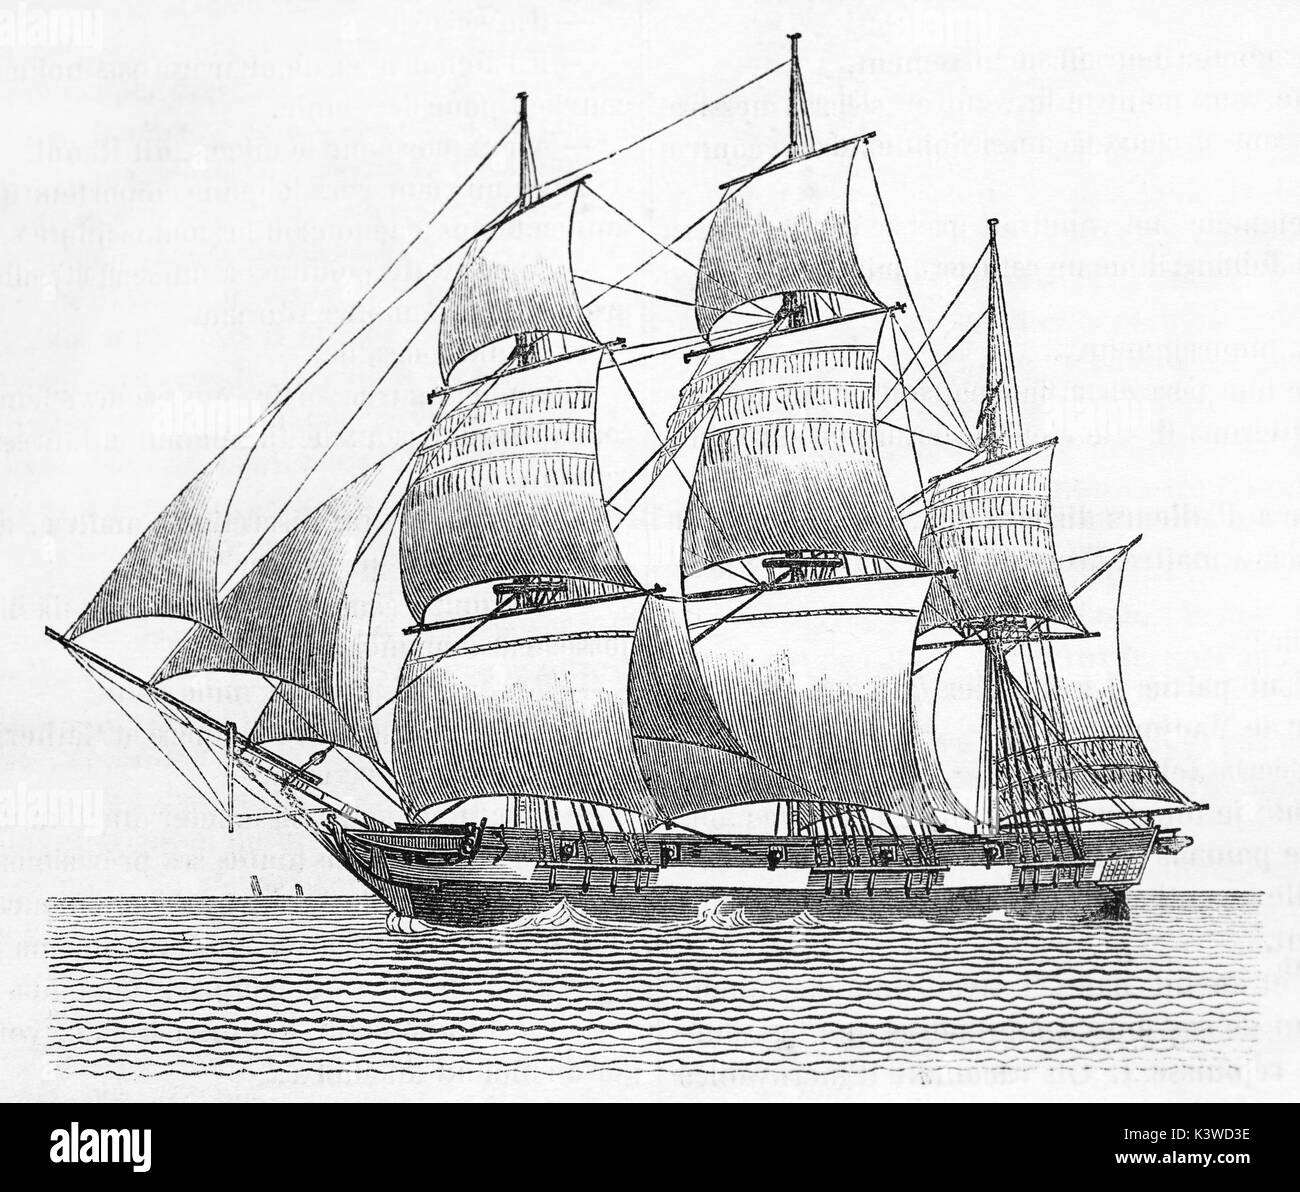 Old illustration of a Sailing Scow, flat-bottomed boat with a blunt bow. By unidentified author, published on Magasin Pittoresque, Paris, 1841 - Stock Image